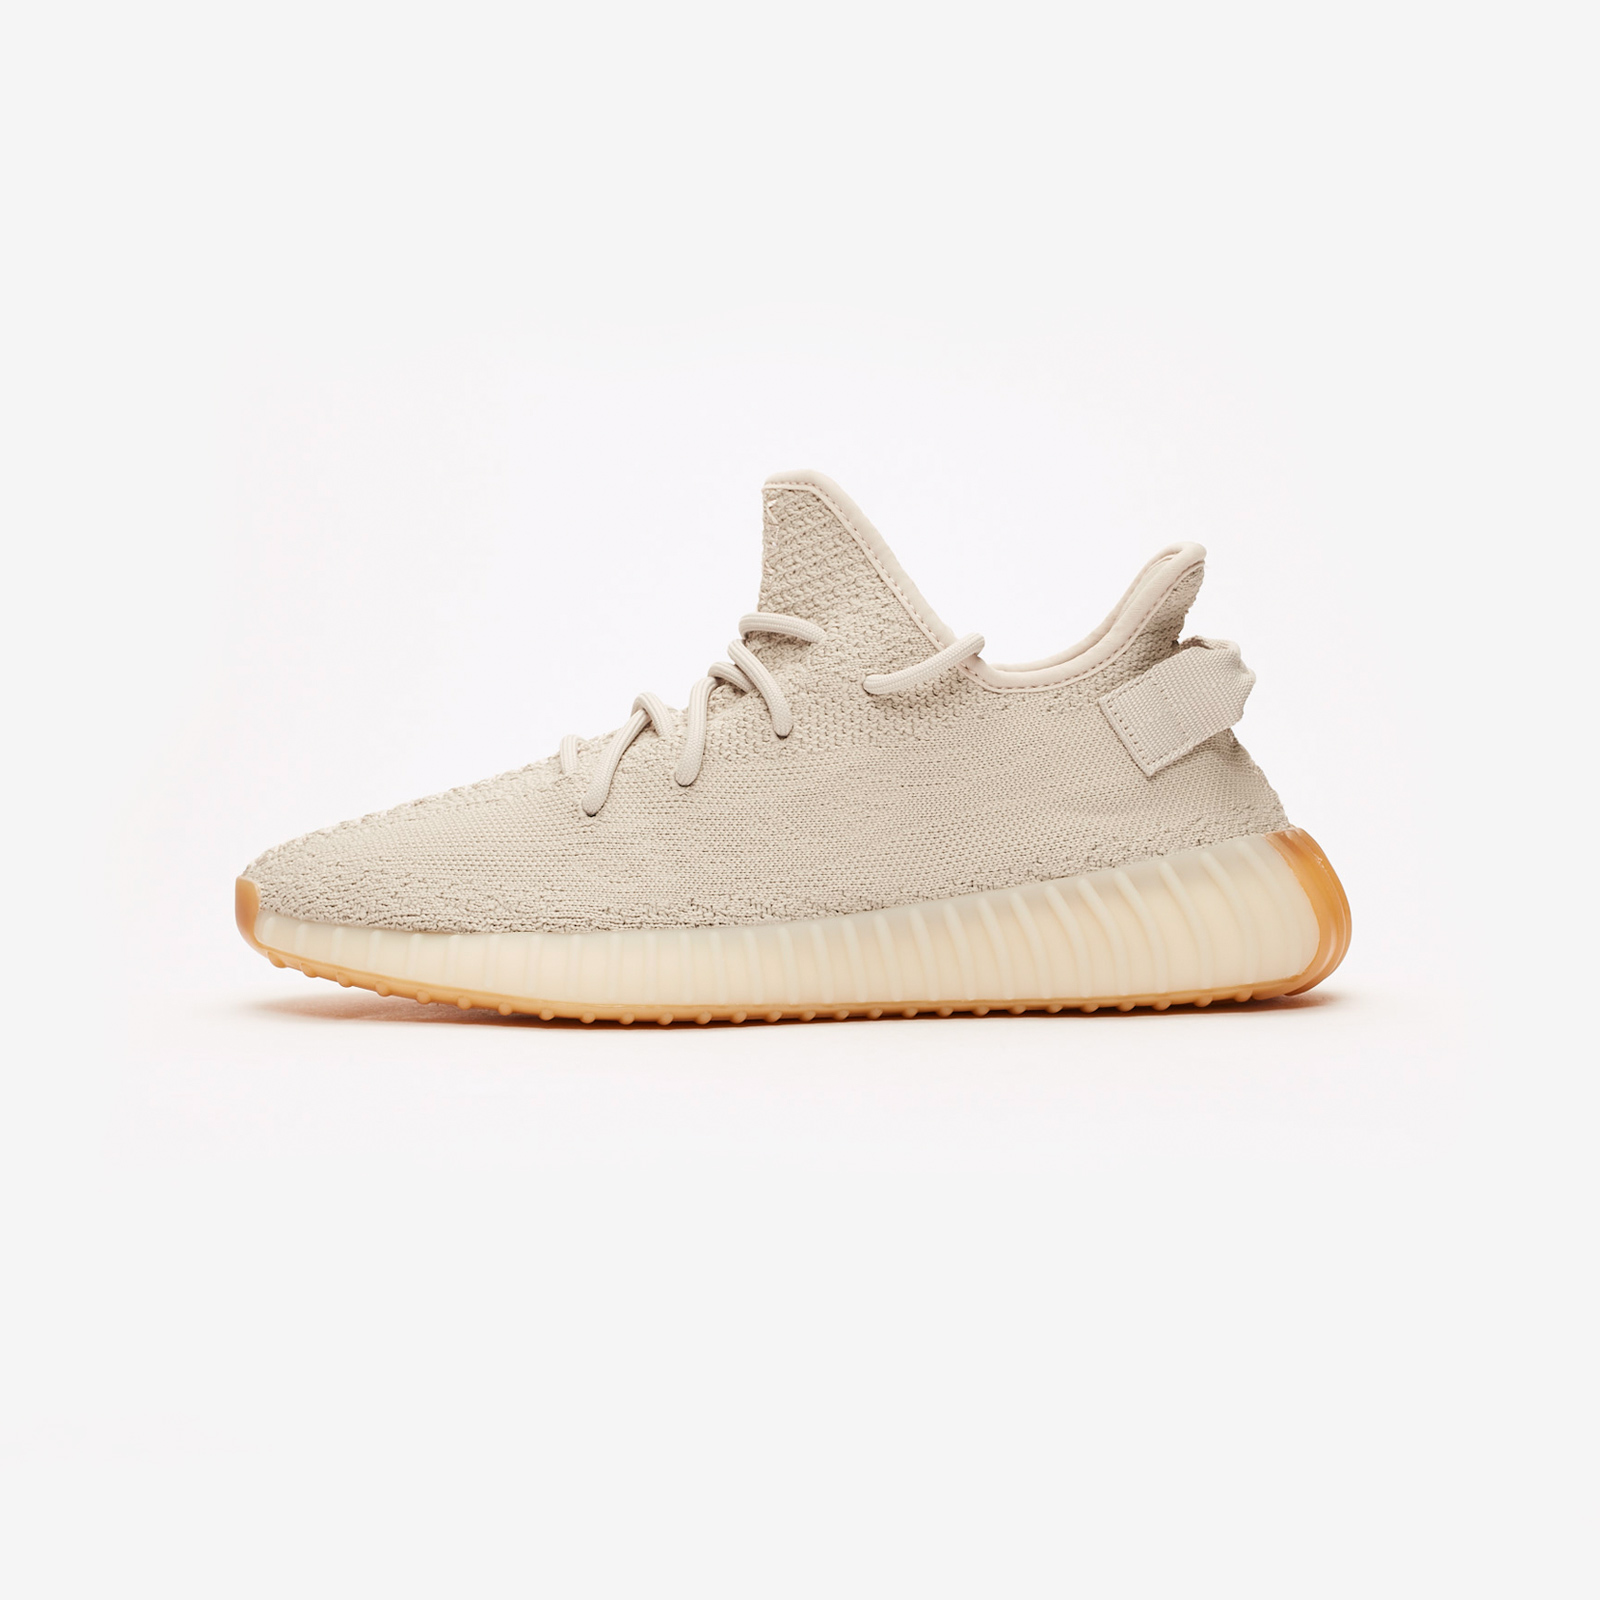 717a4d1cf1592 adidas Yeezy Boost 350 V2 - F99710 - Sneakersnstuff